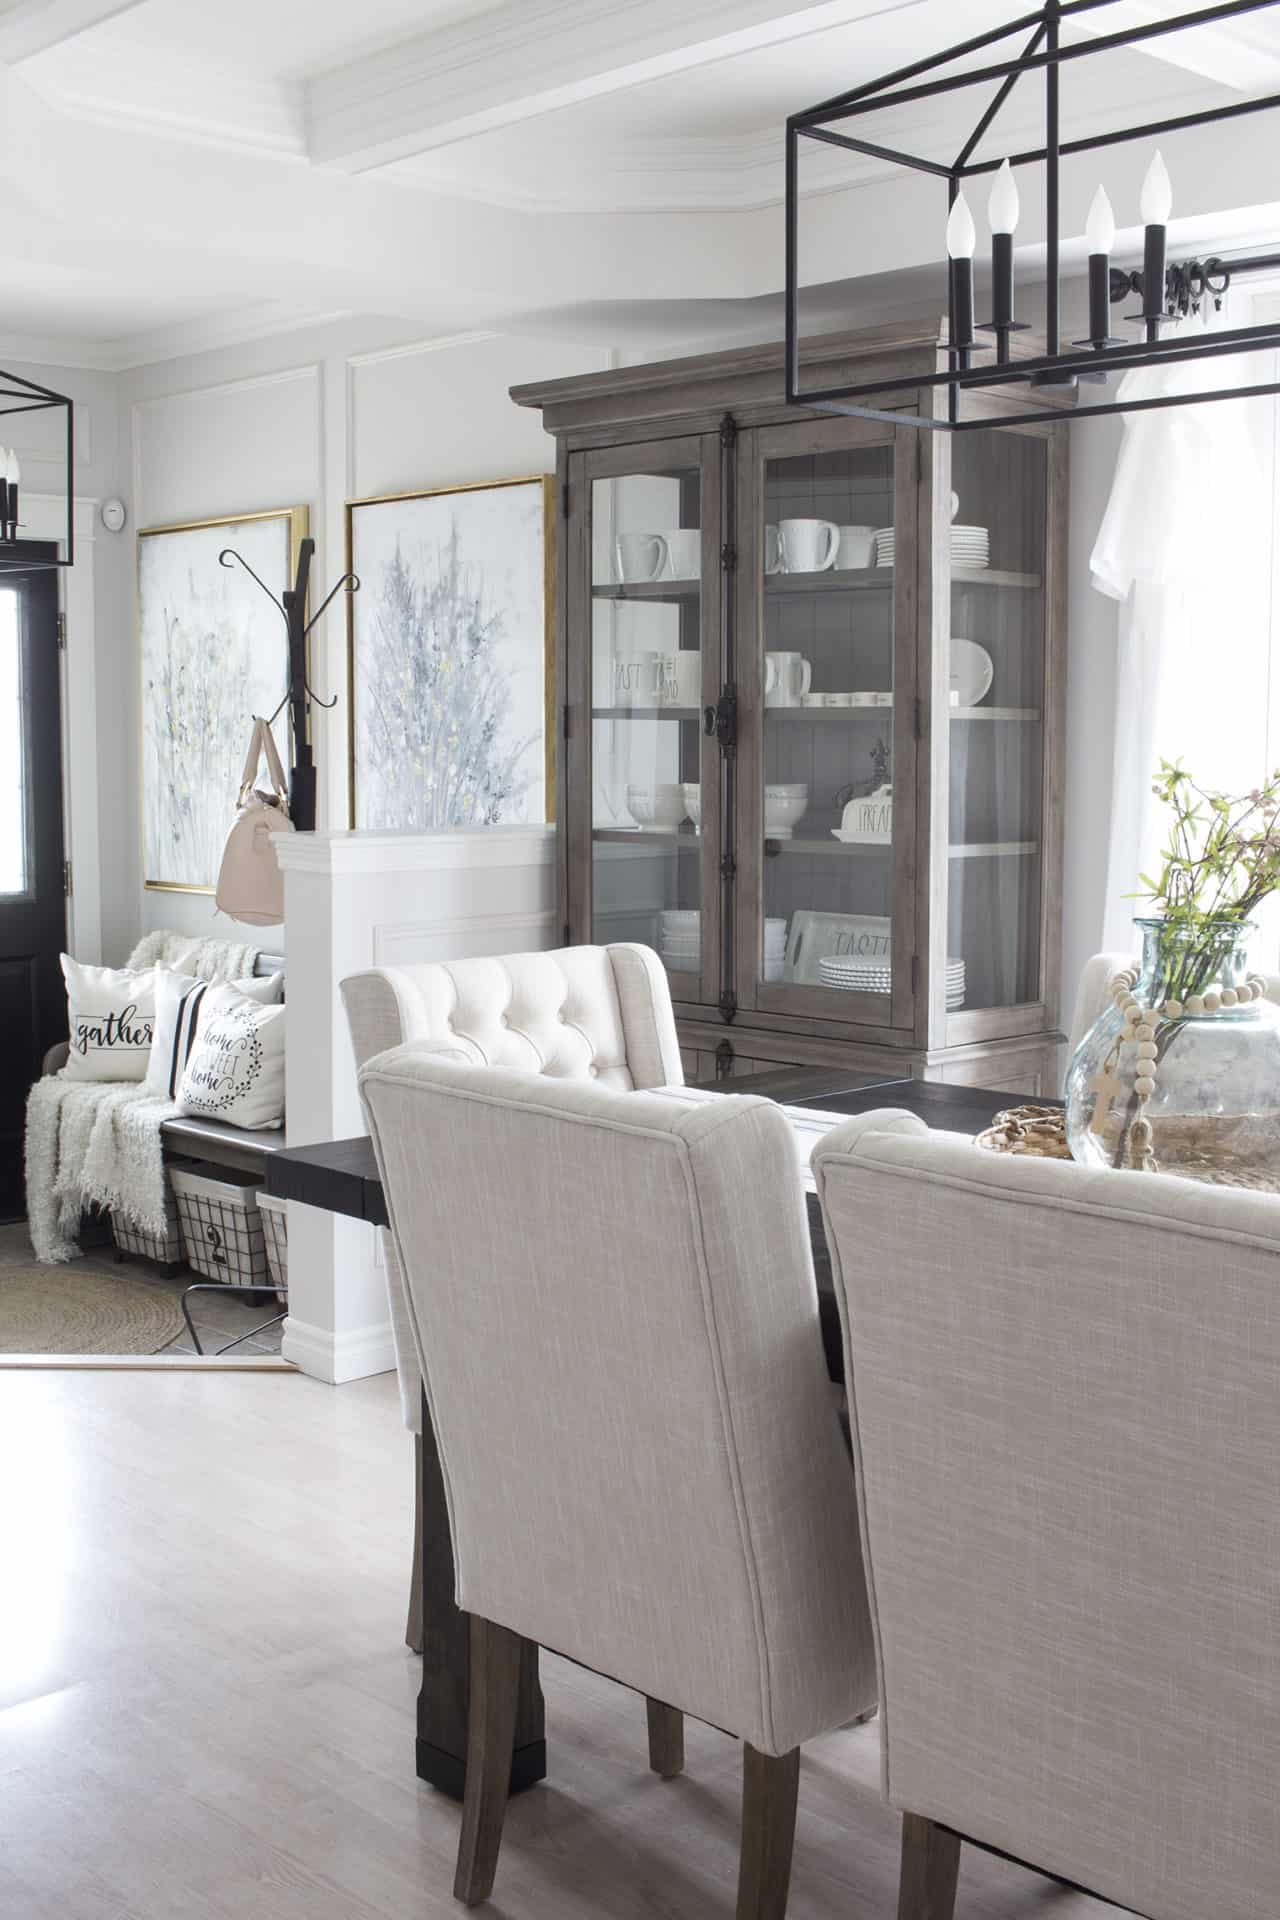 neutral dining room with upholstered chairs and shades of white and taupe to illustrate a good color scheme